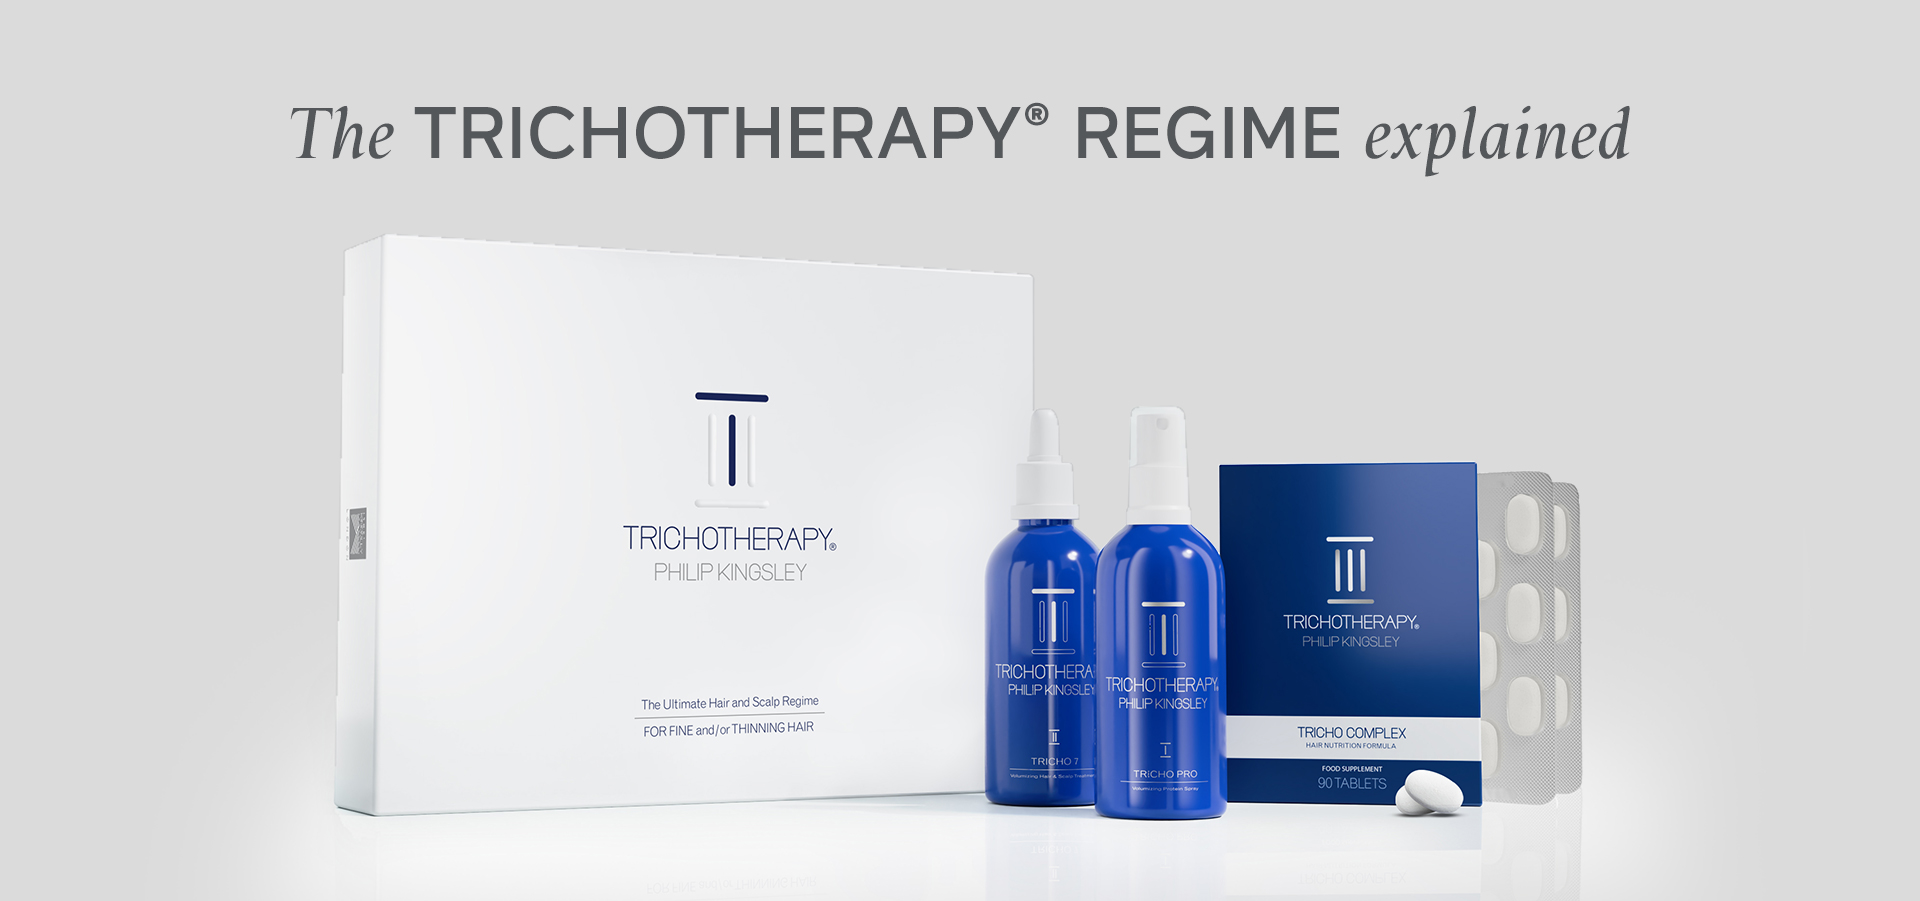 Trichotheraphy Explained